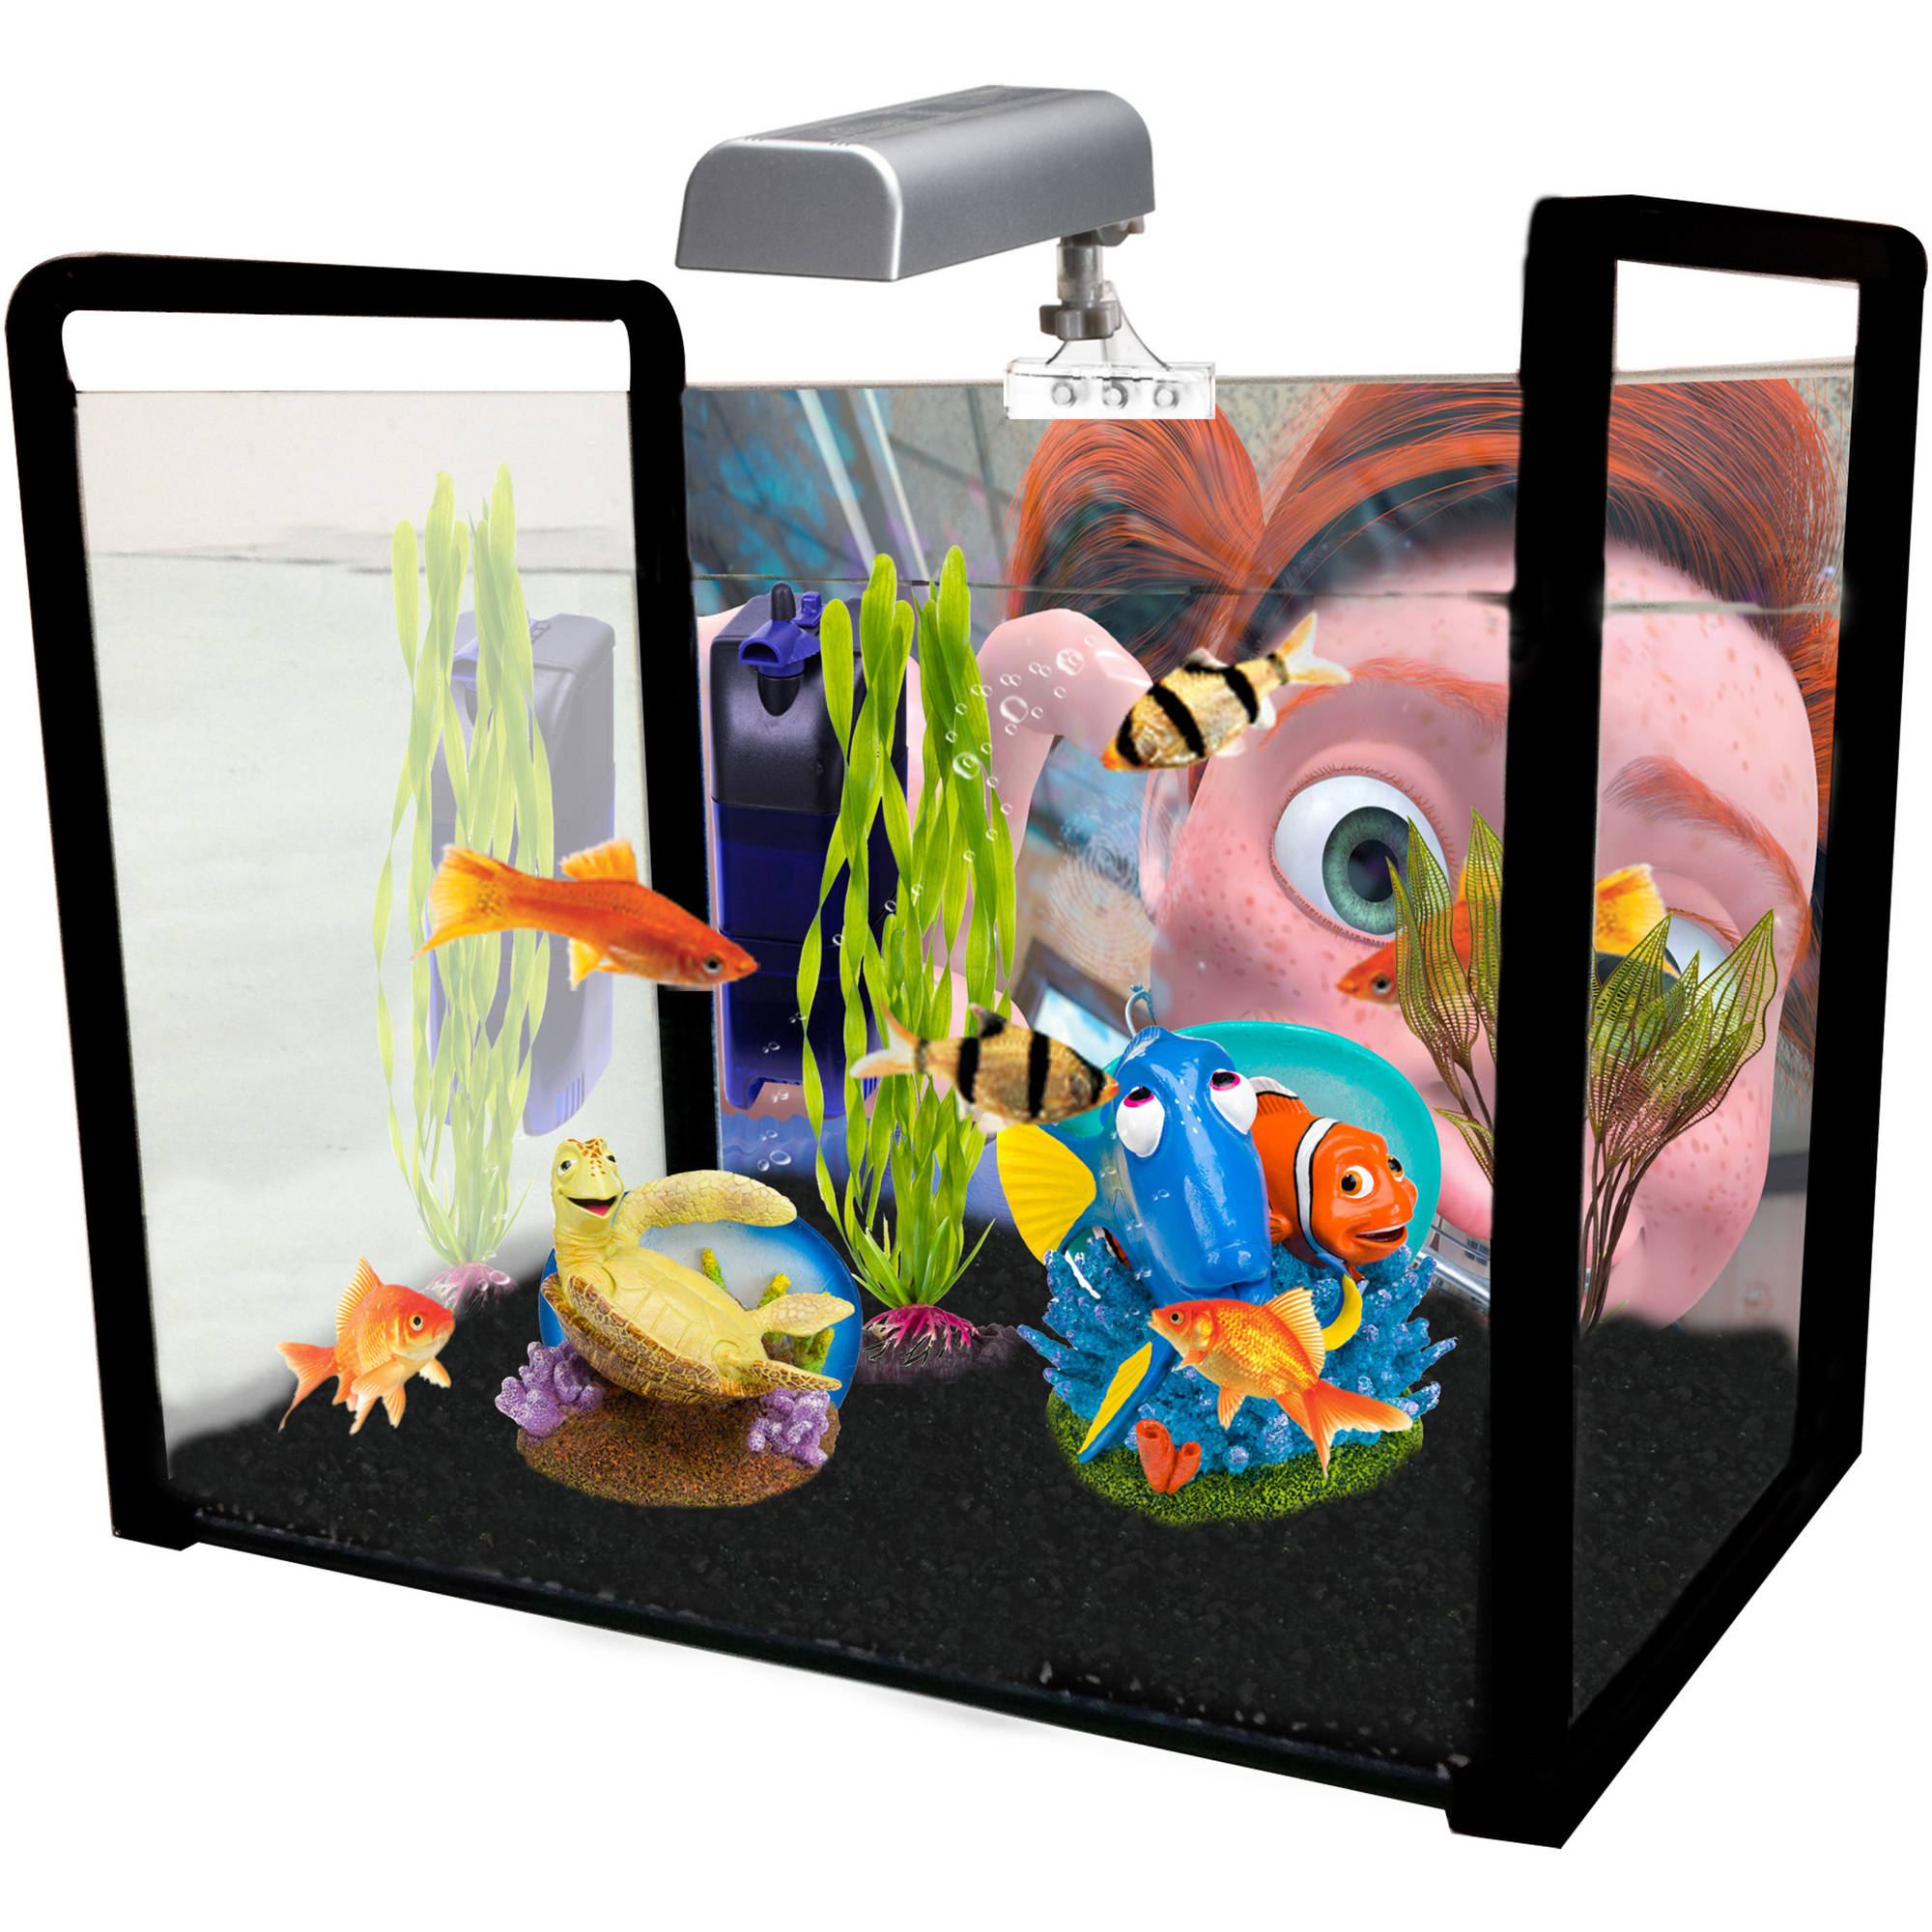 Penn Plax Disney's Finding Nemo Decoration Kit, Medium